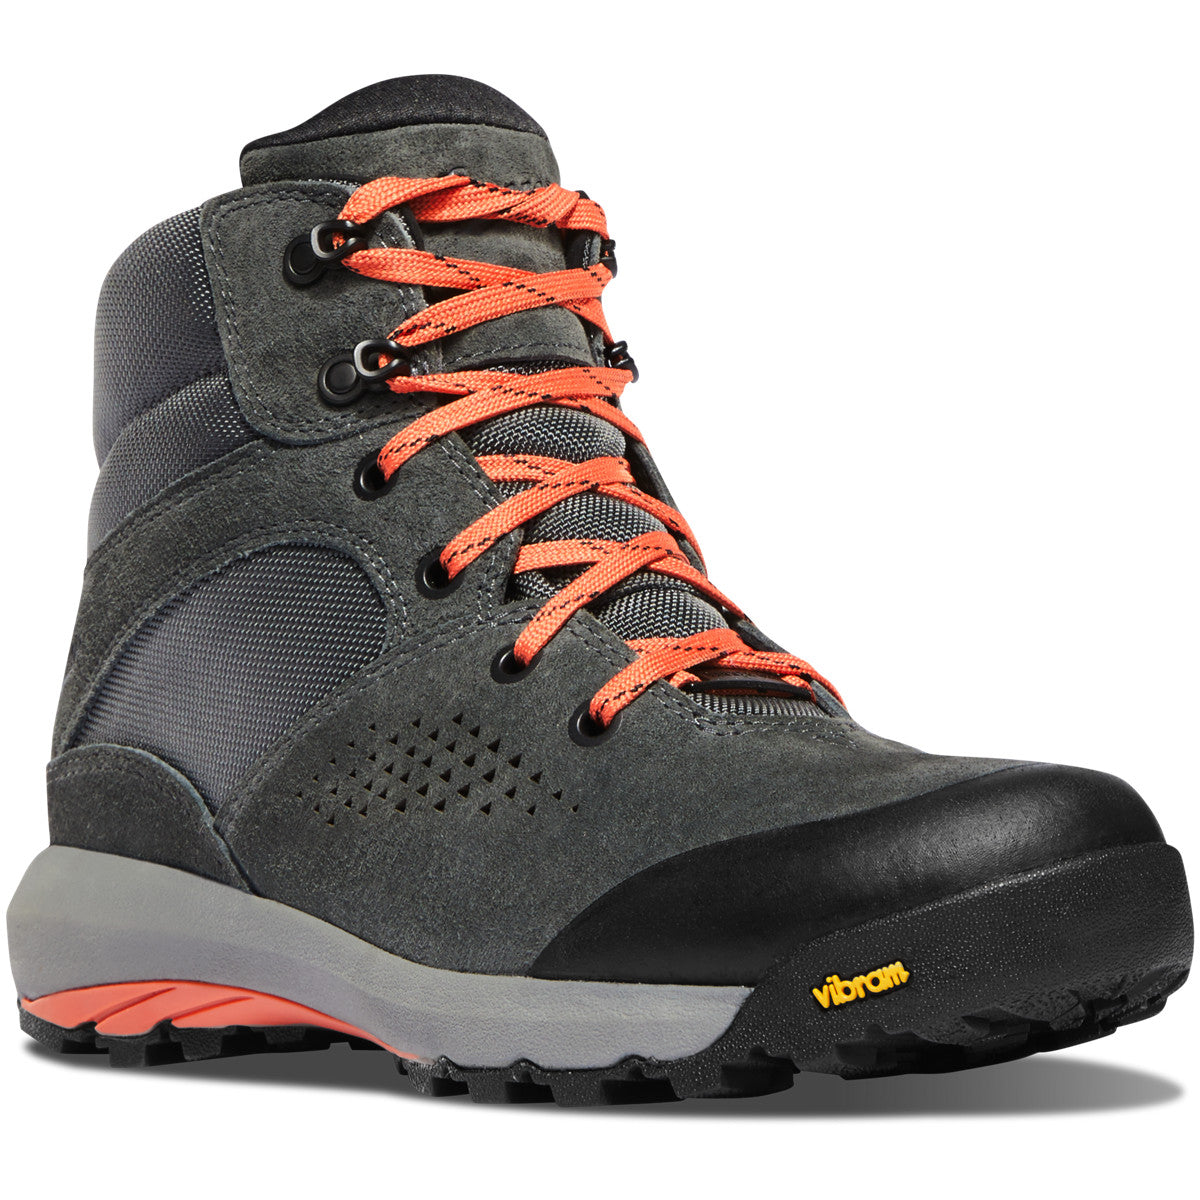 Danner Inquire Women's Mid Boots - 88 Gear